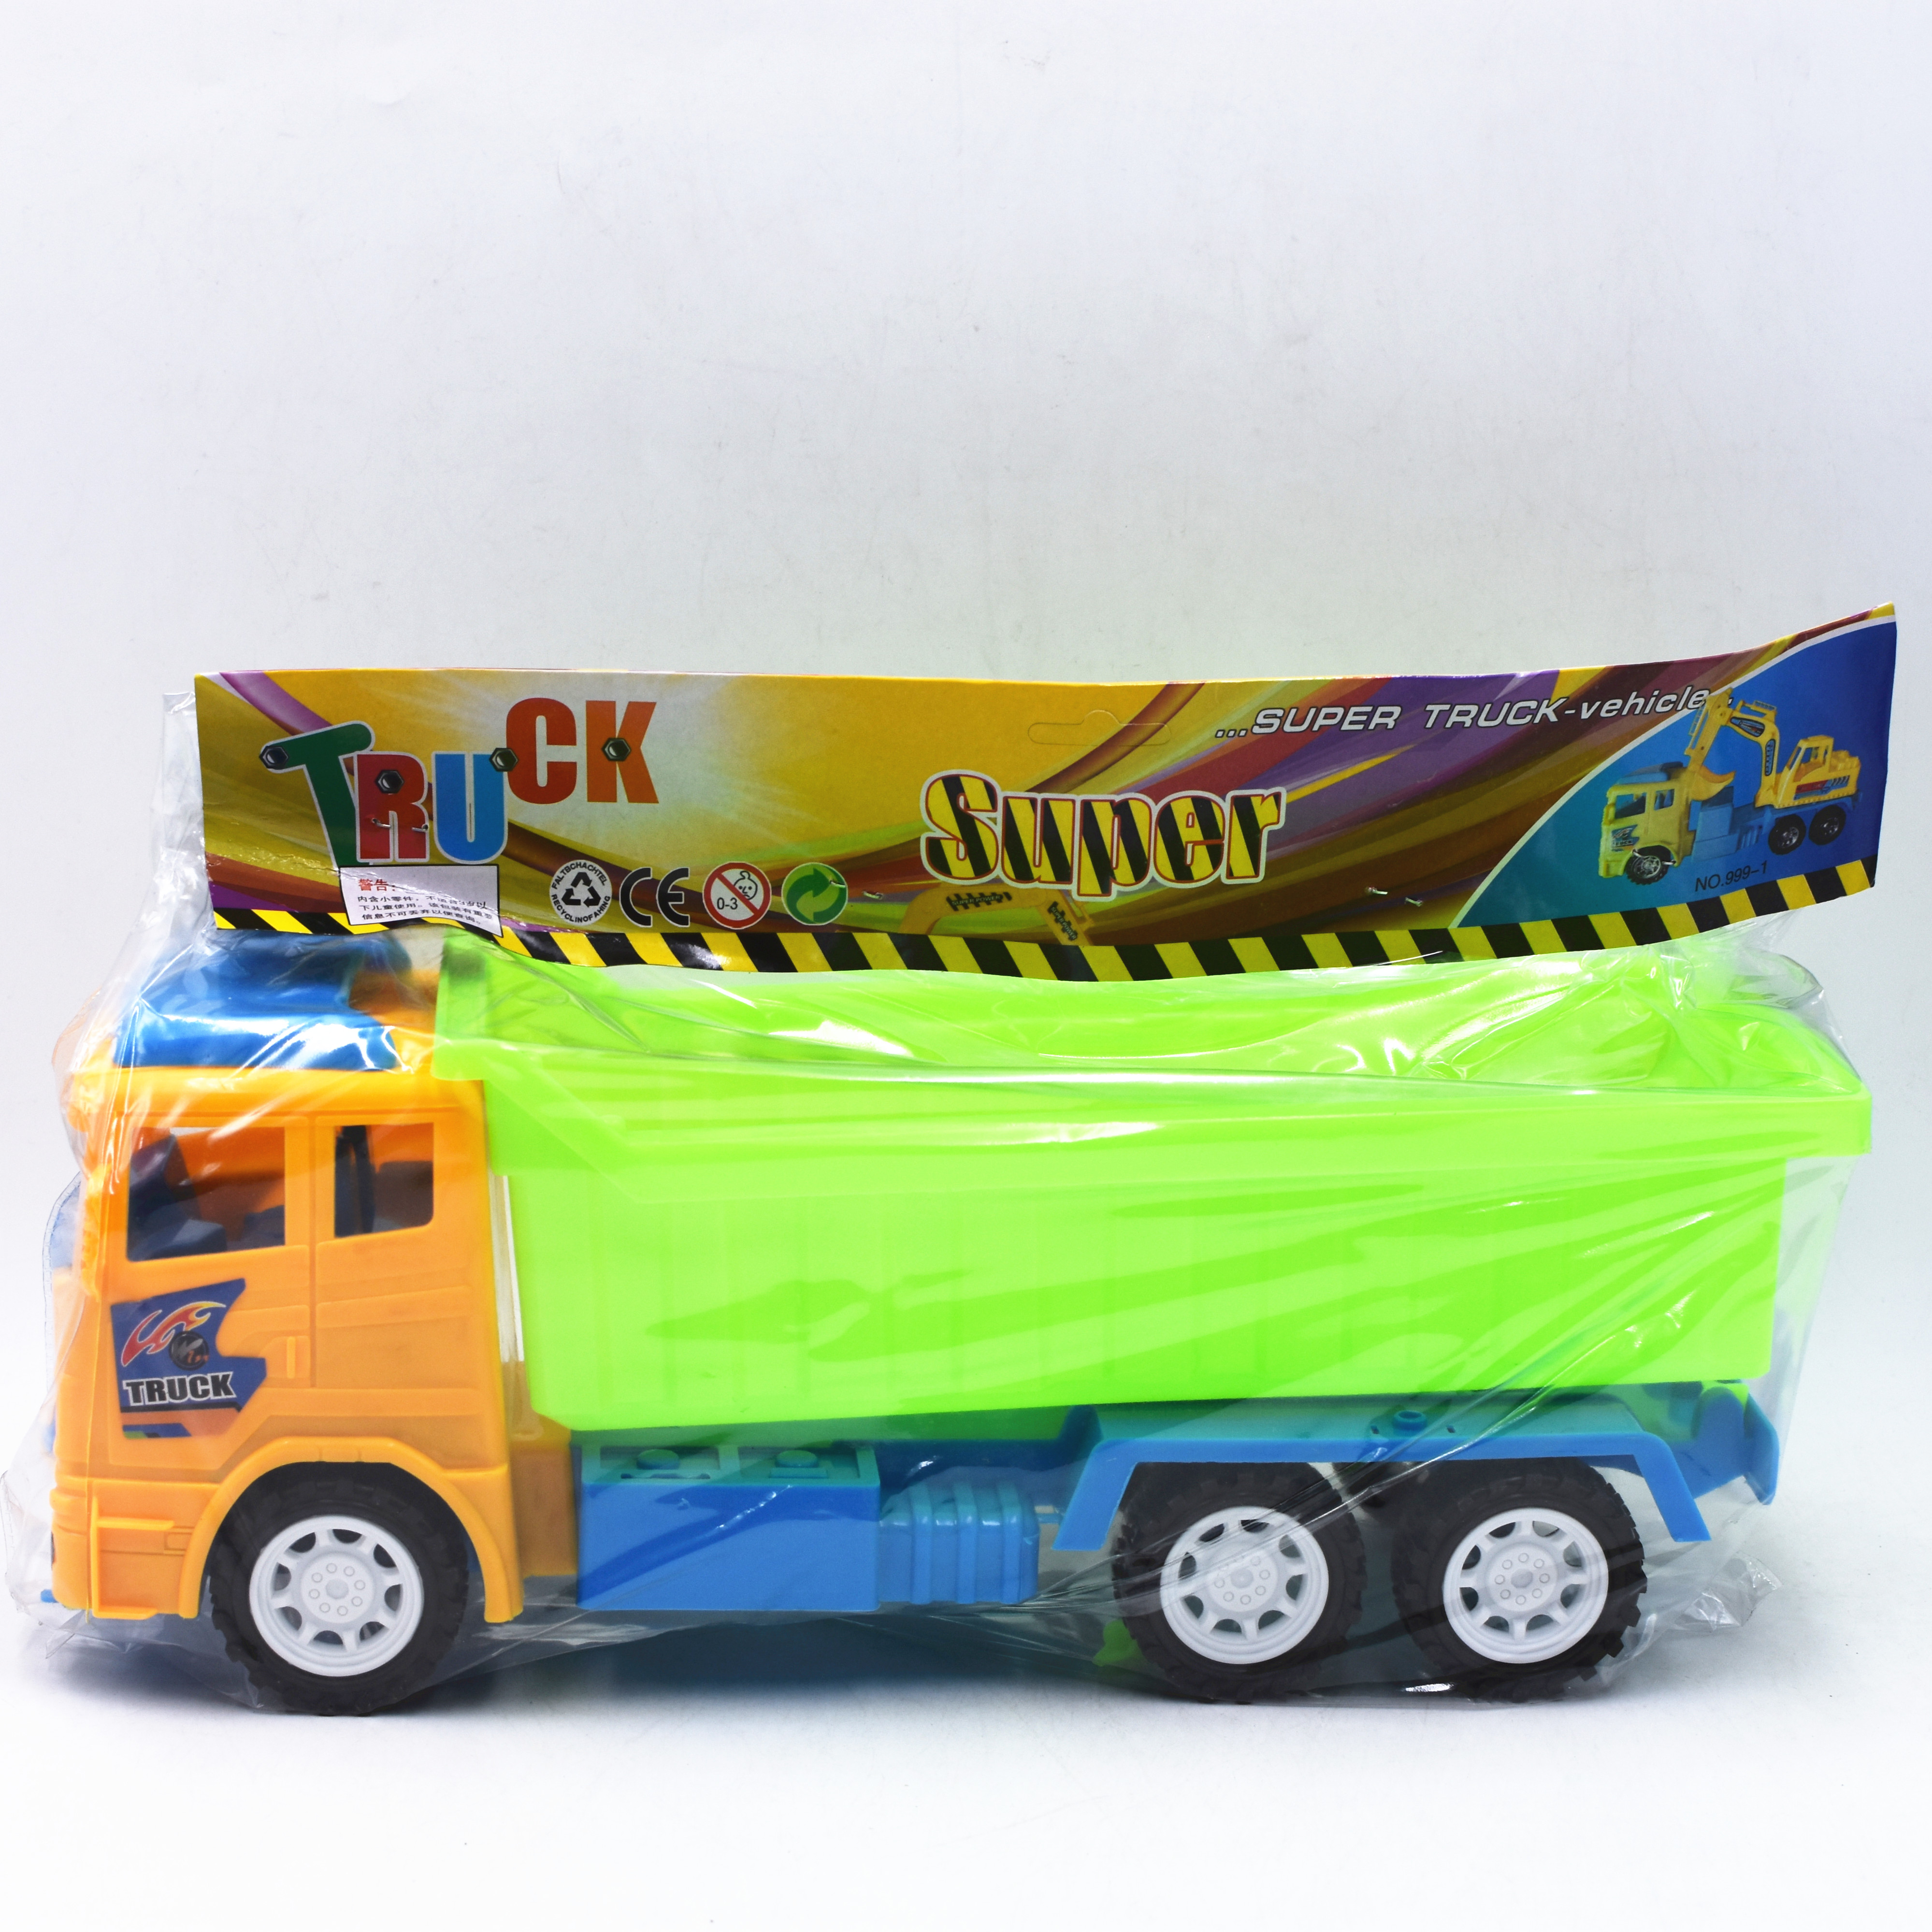 FREE WHEEL TRUCK TOY LY1737